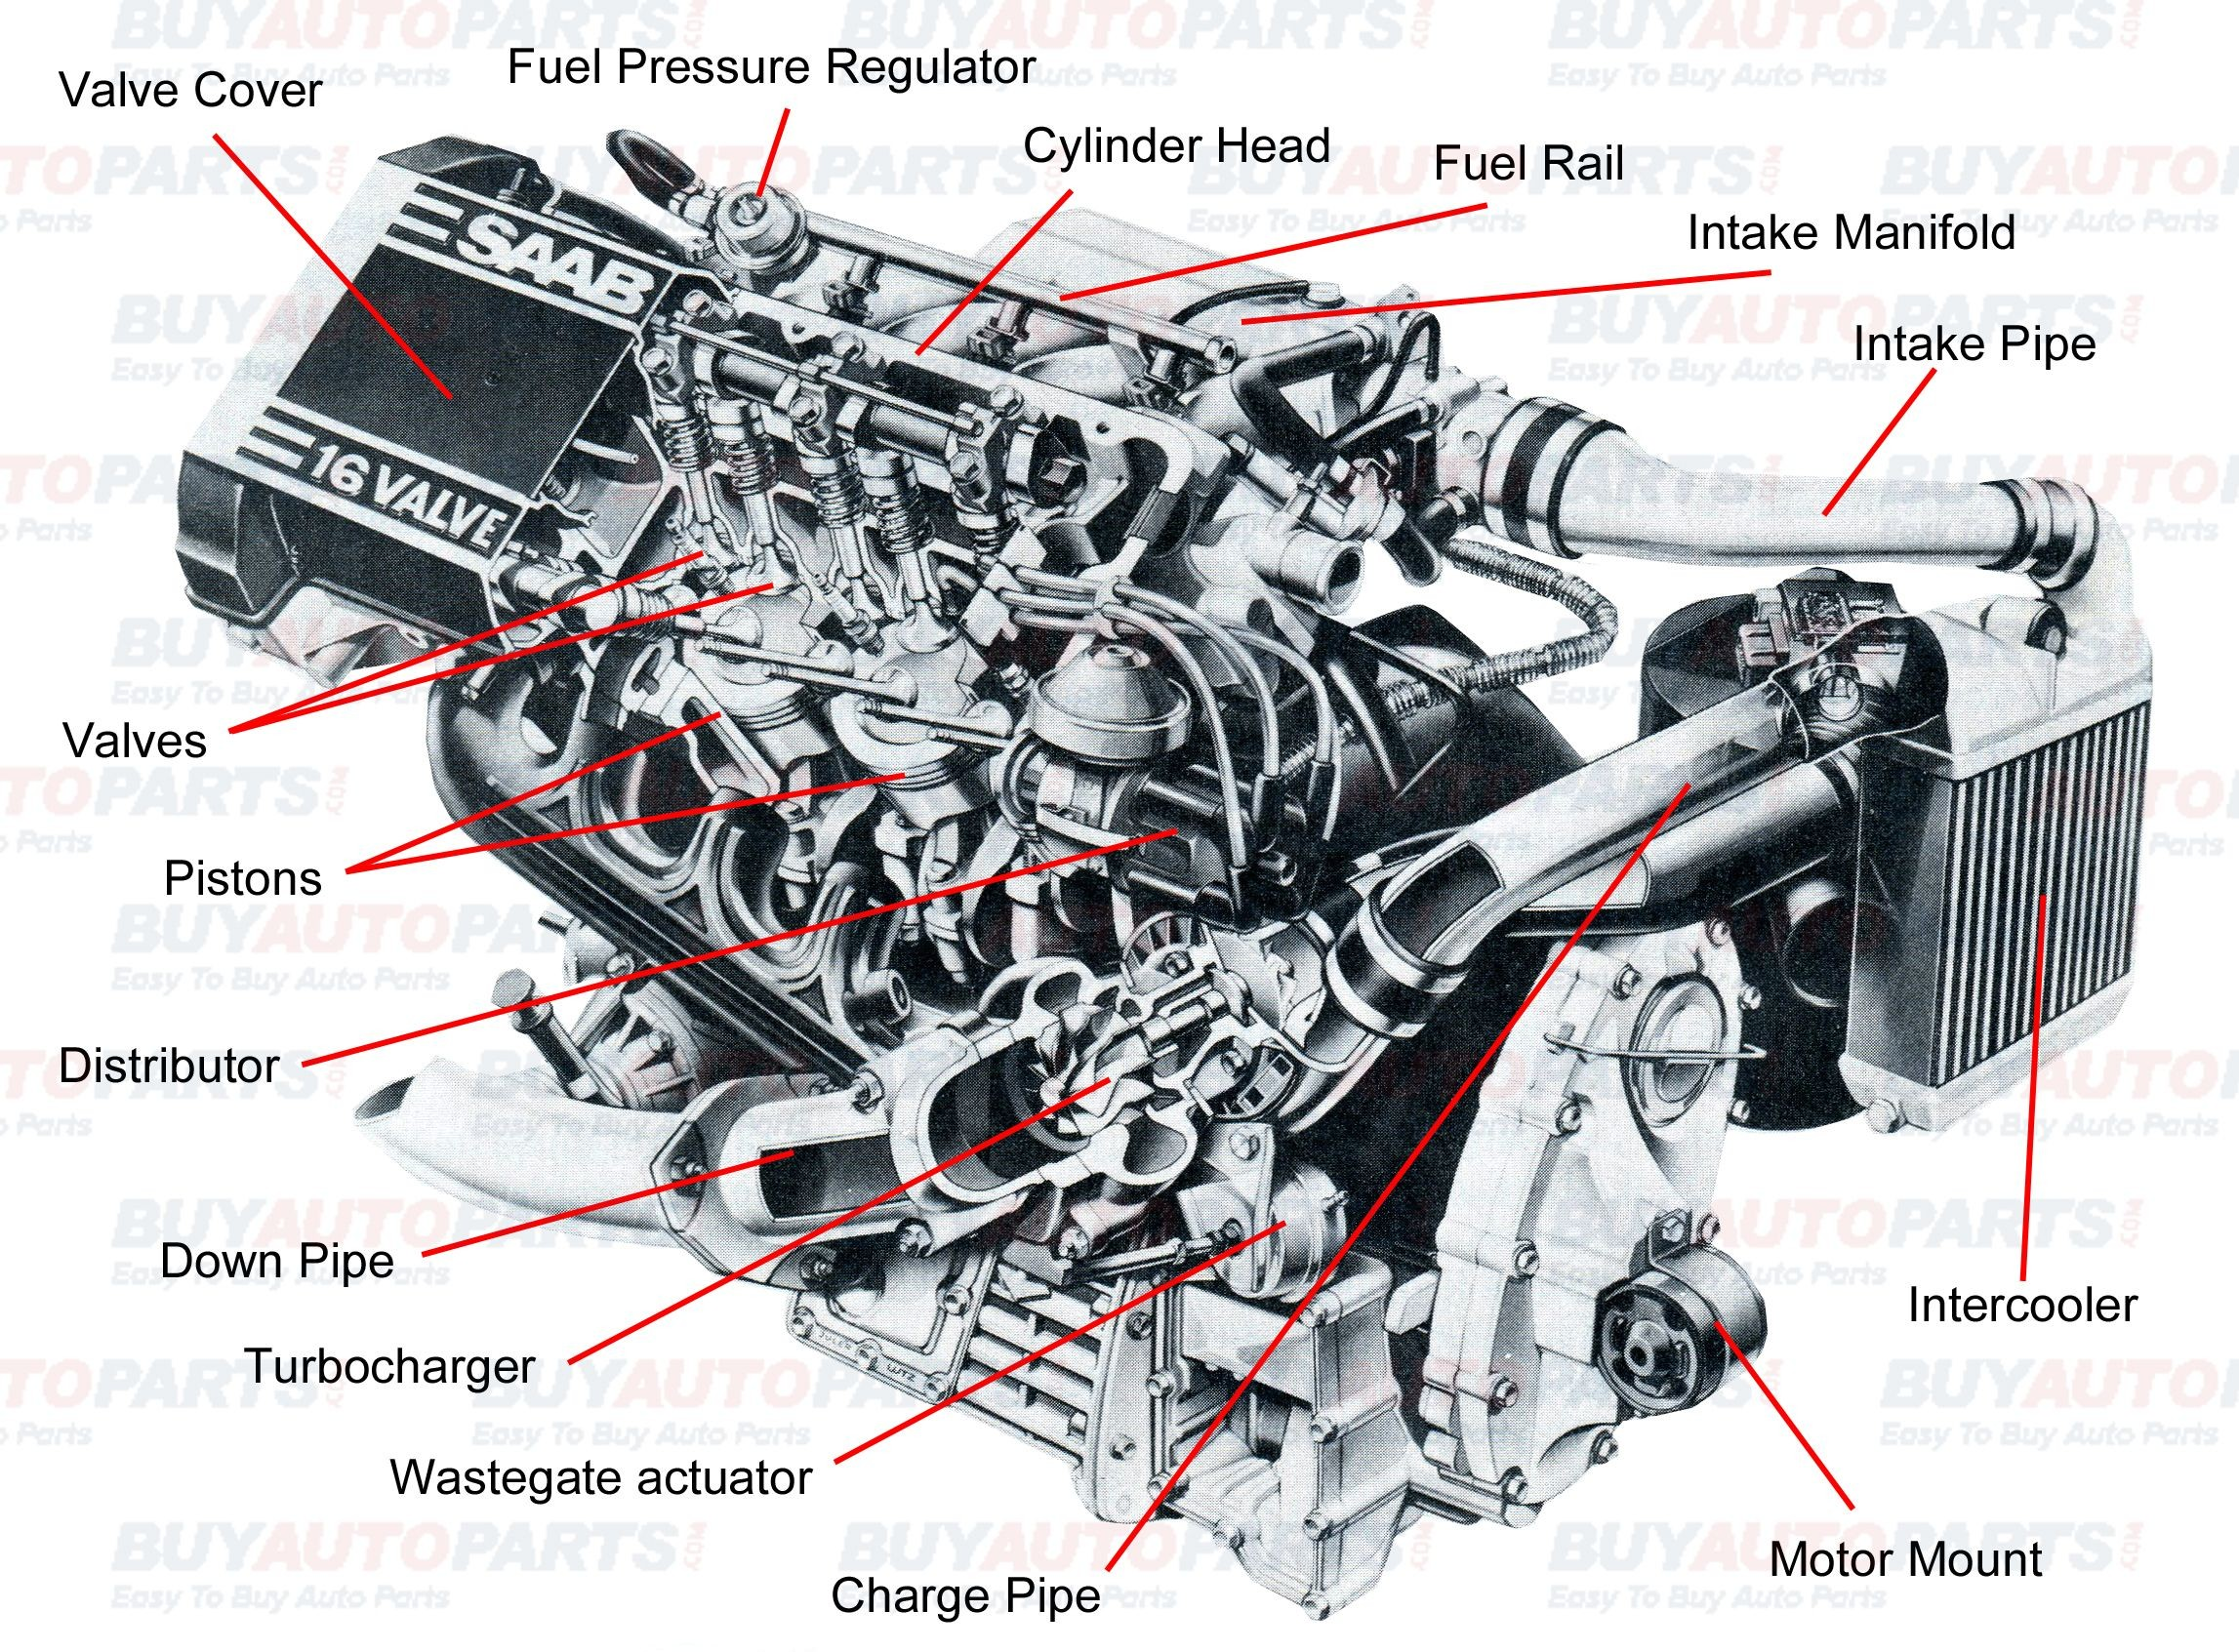 Car Hood Diagram Pictures Starter 1 1 Of Car Hood Diagram Phillips Chevrolet 2014 Chevy Malibu Under the Hood New Car